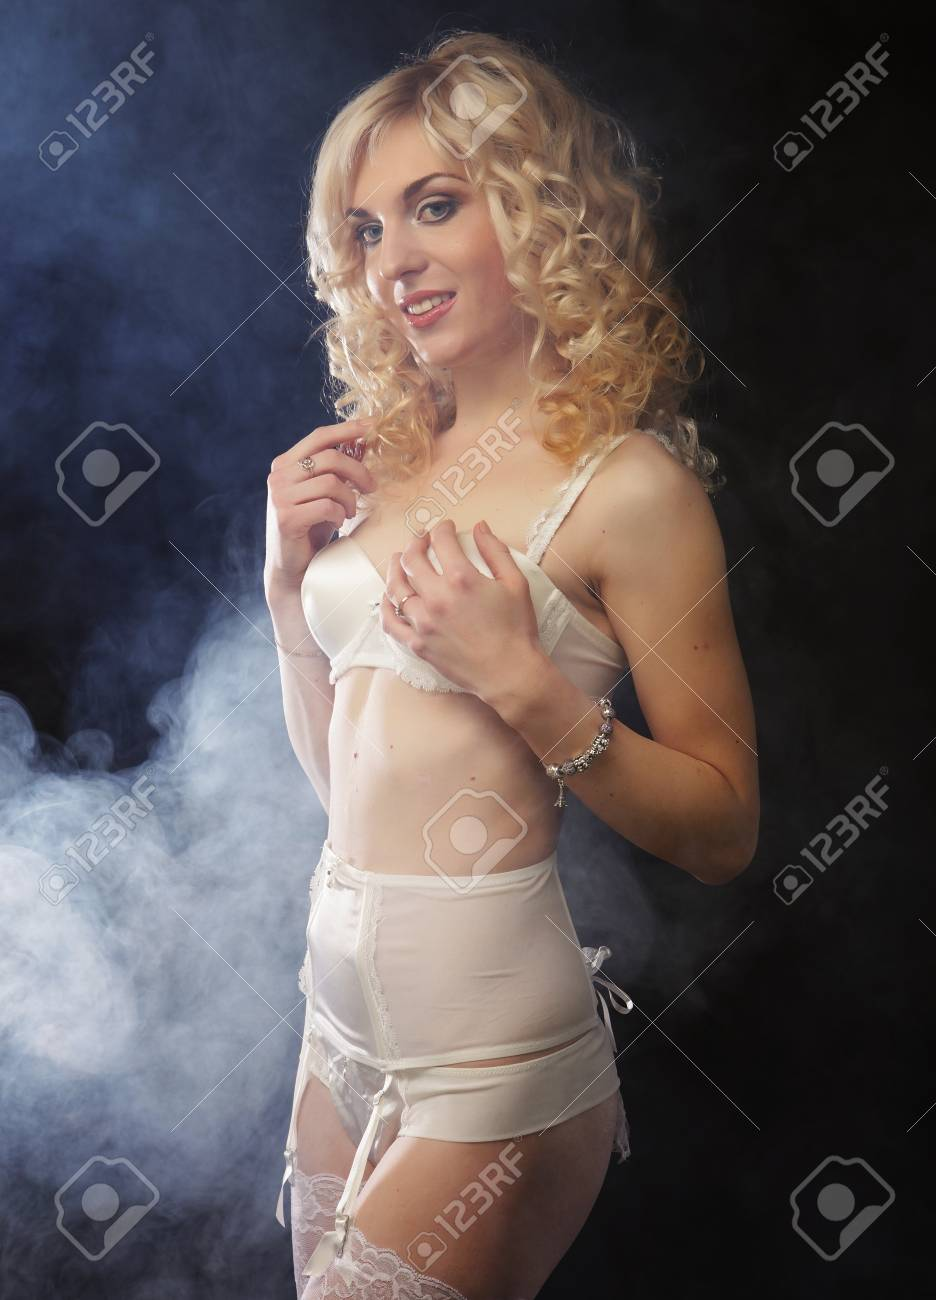 6969e1a0abf young sexy blond woman in lingerie over dark background Stock Photo -  42758432